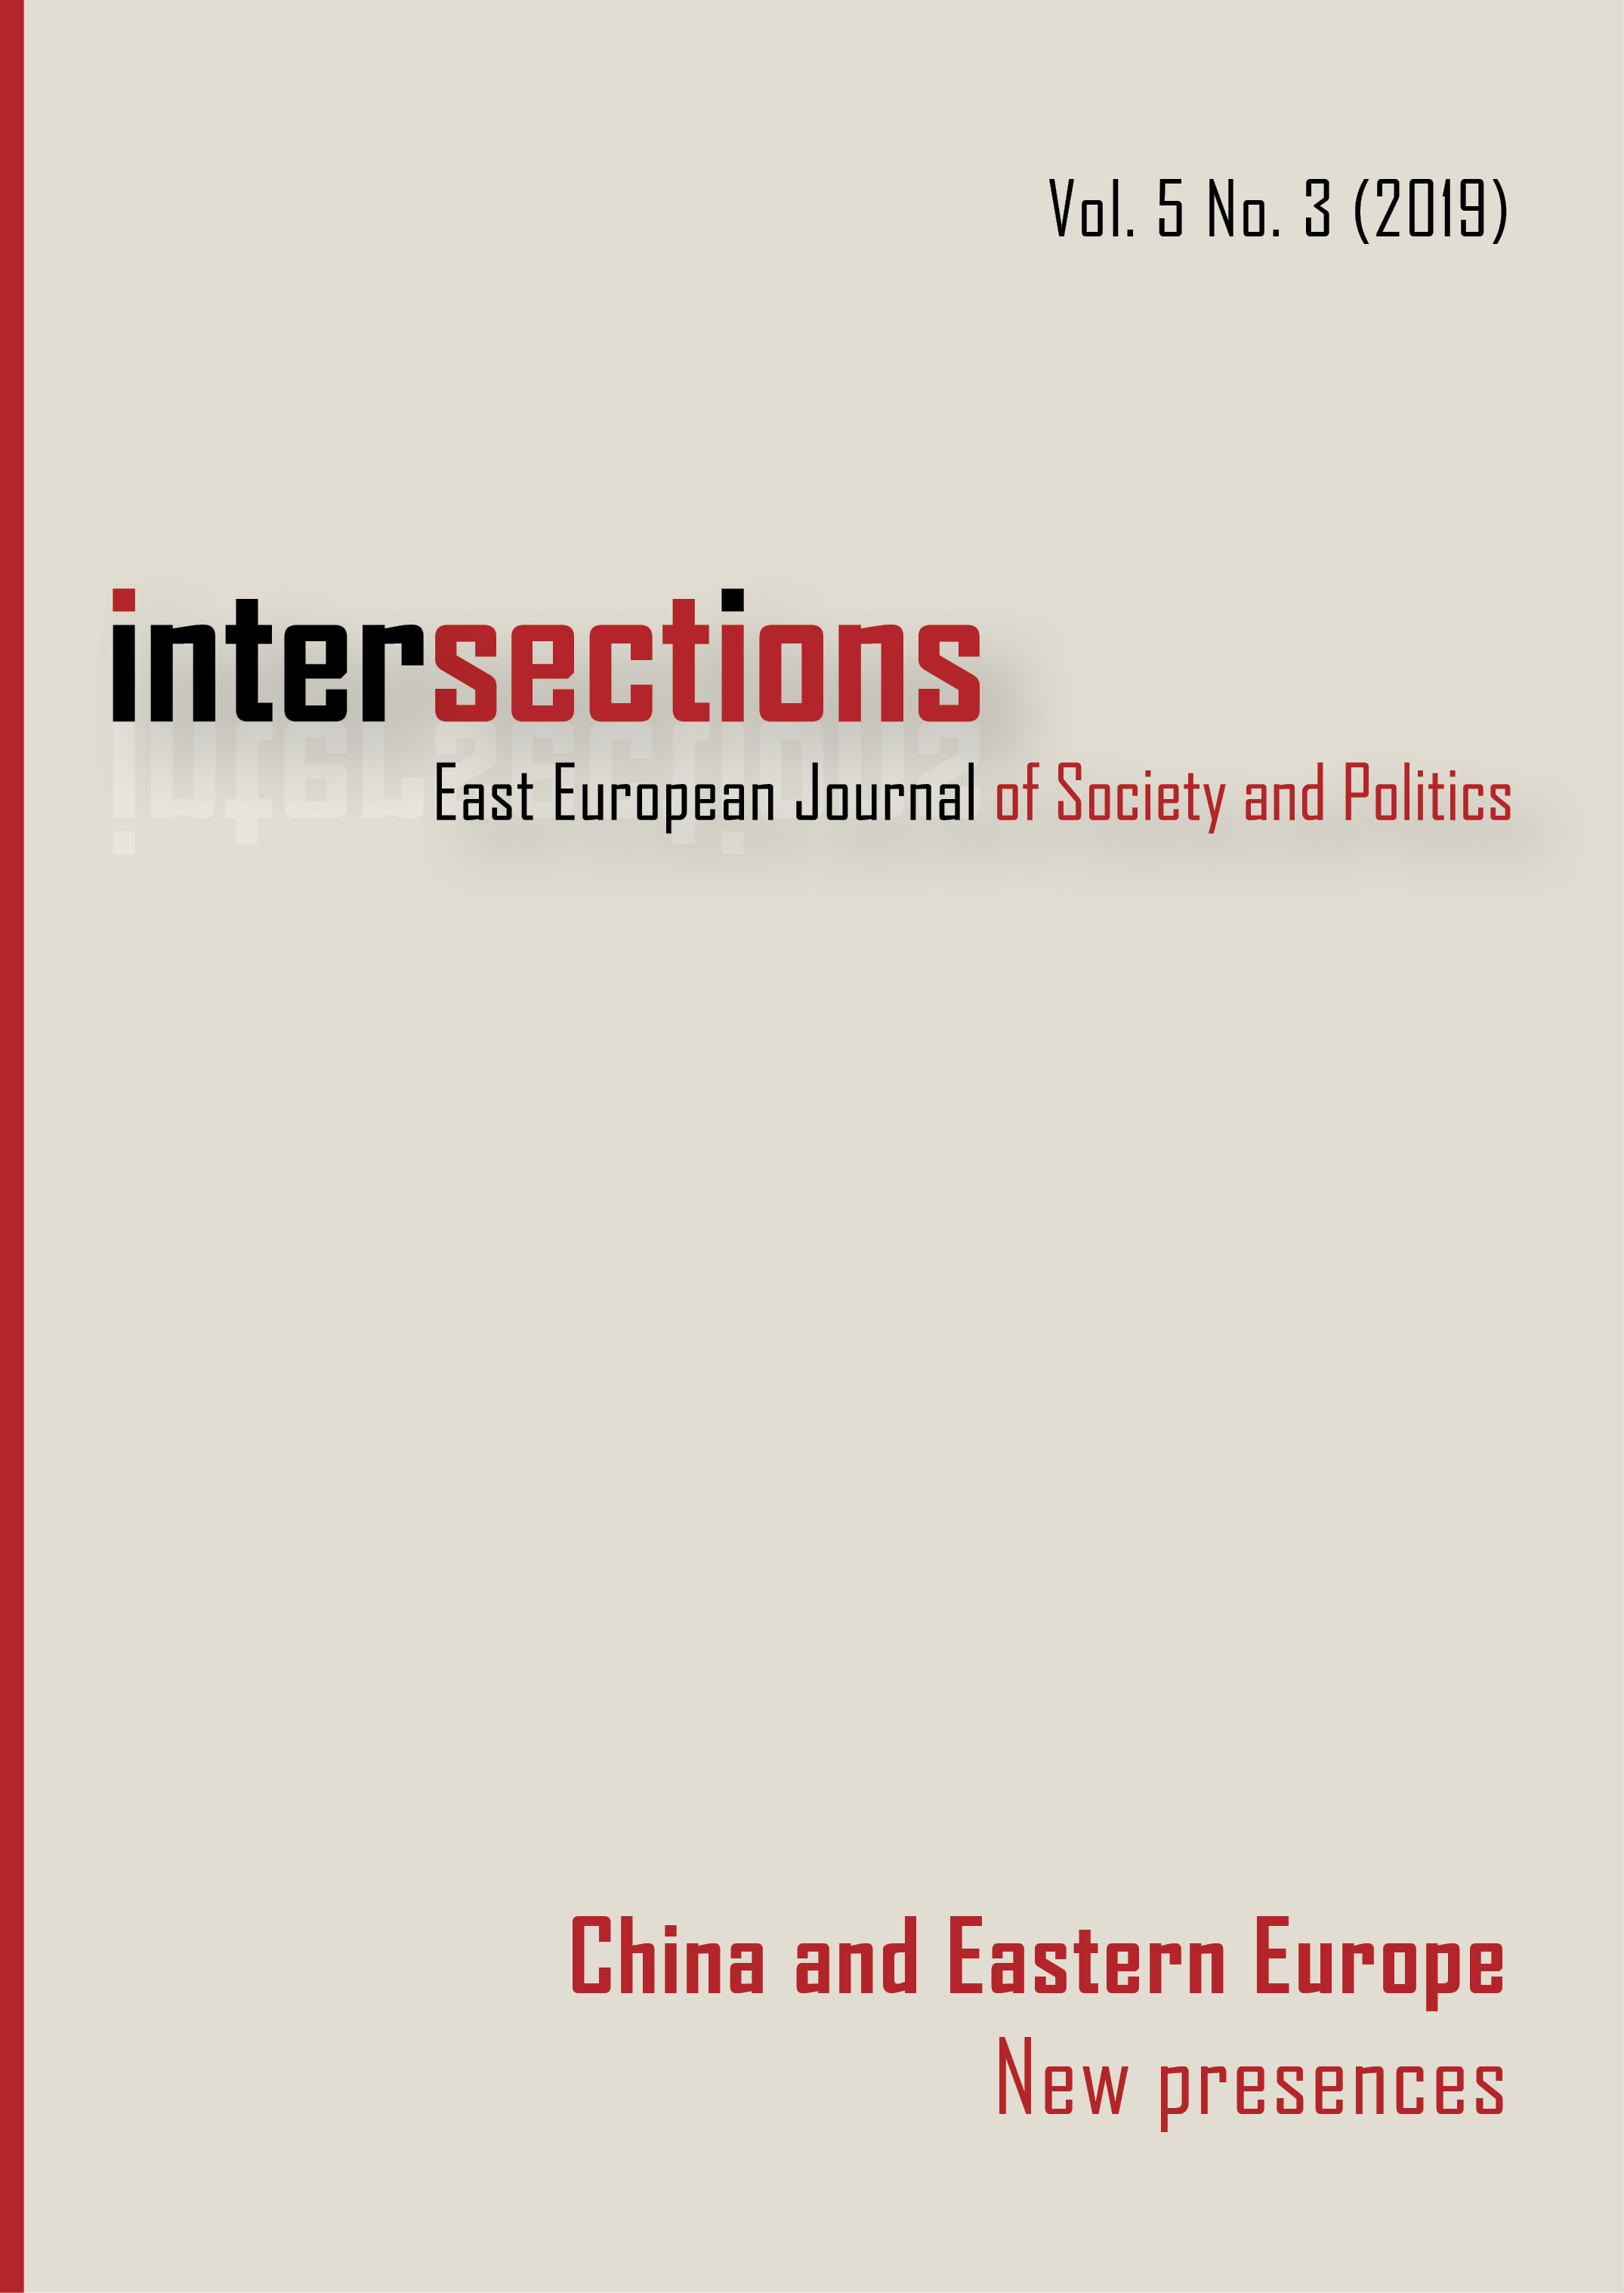 View Vol. 5 No. 3 (2019): China and Eastern Europe: New Presences